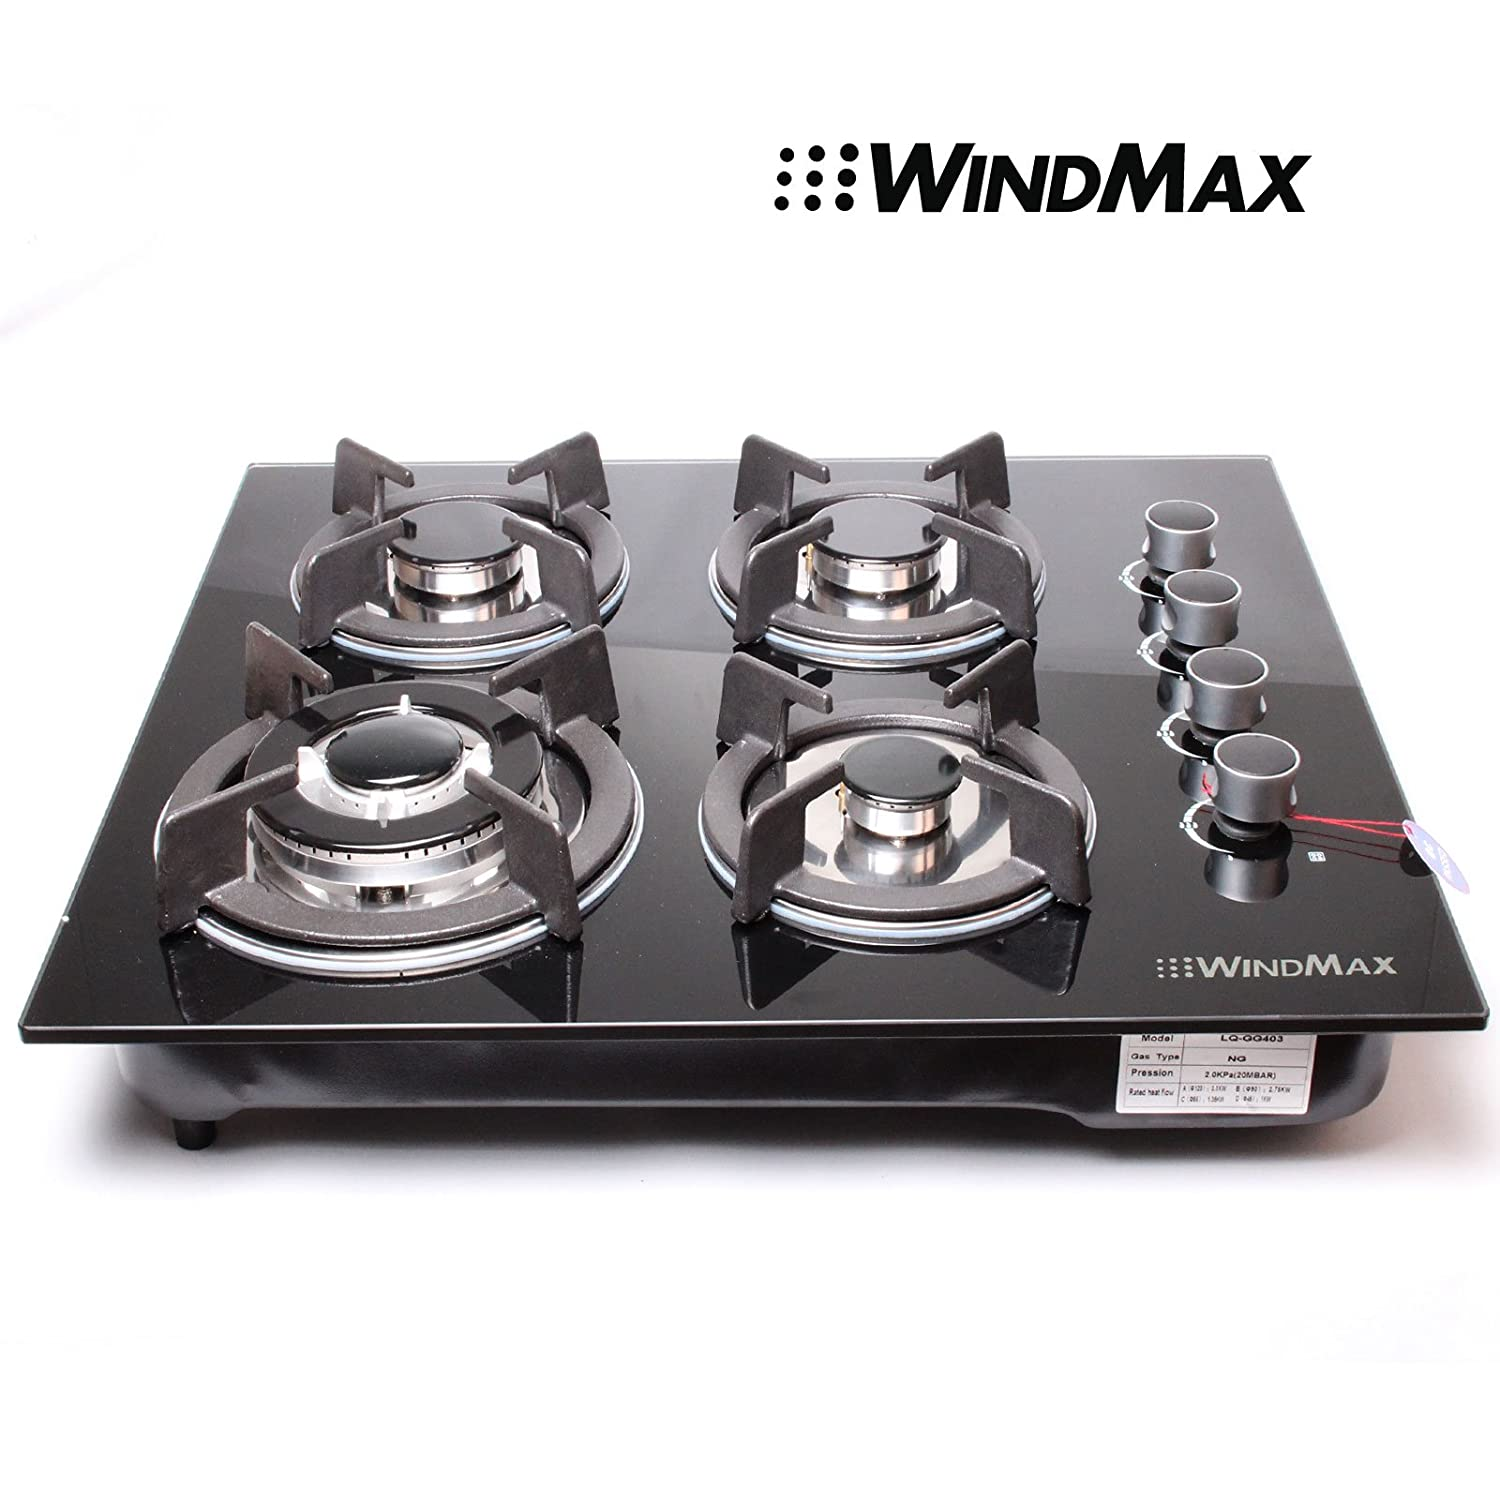 "Windmax US Seller 24"" 3.3KW Kitchen Glass Built-in 4 Burners Gas Hob Cooktop Cookware"